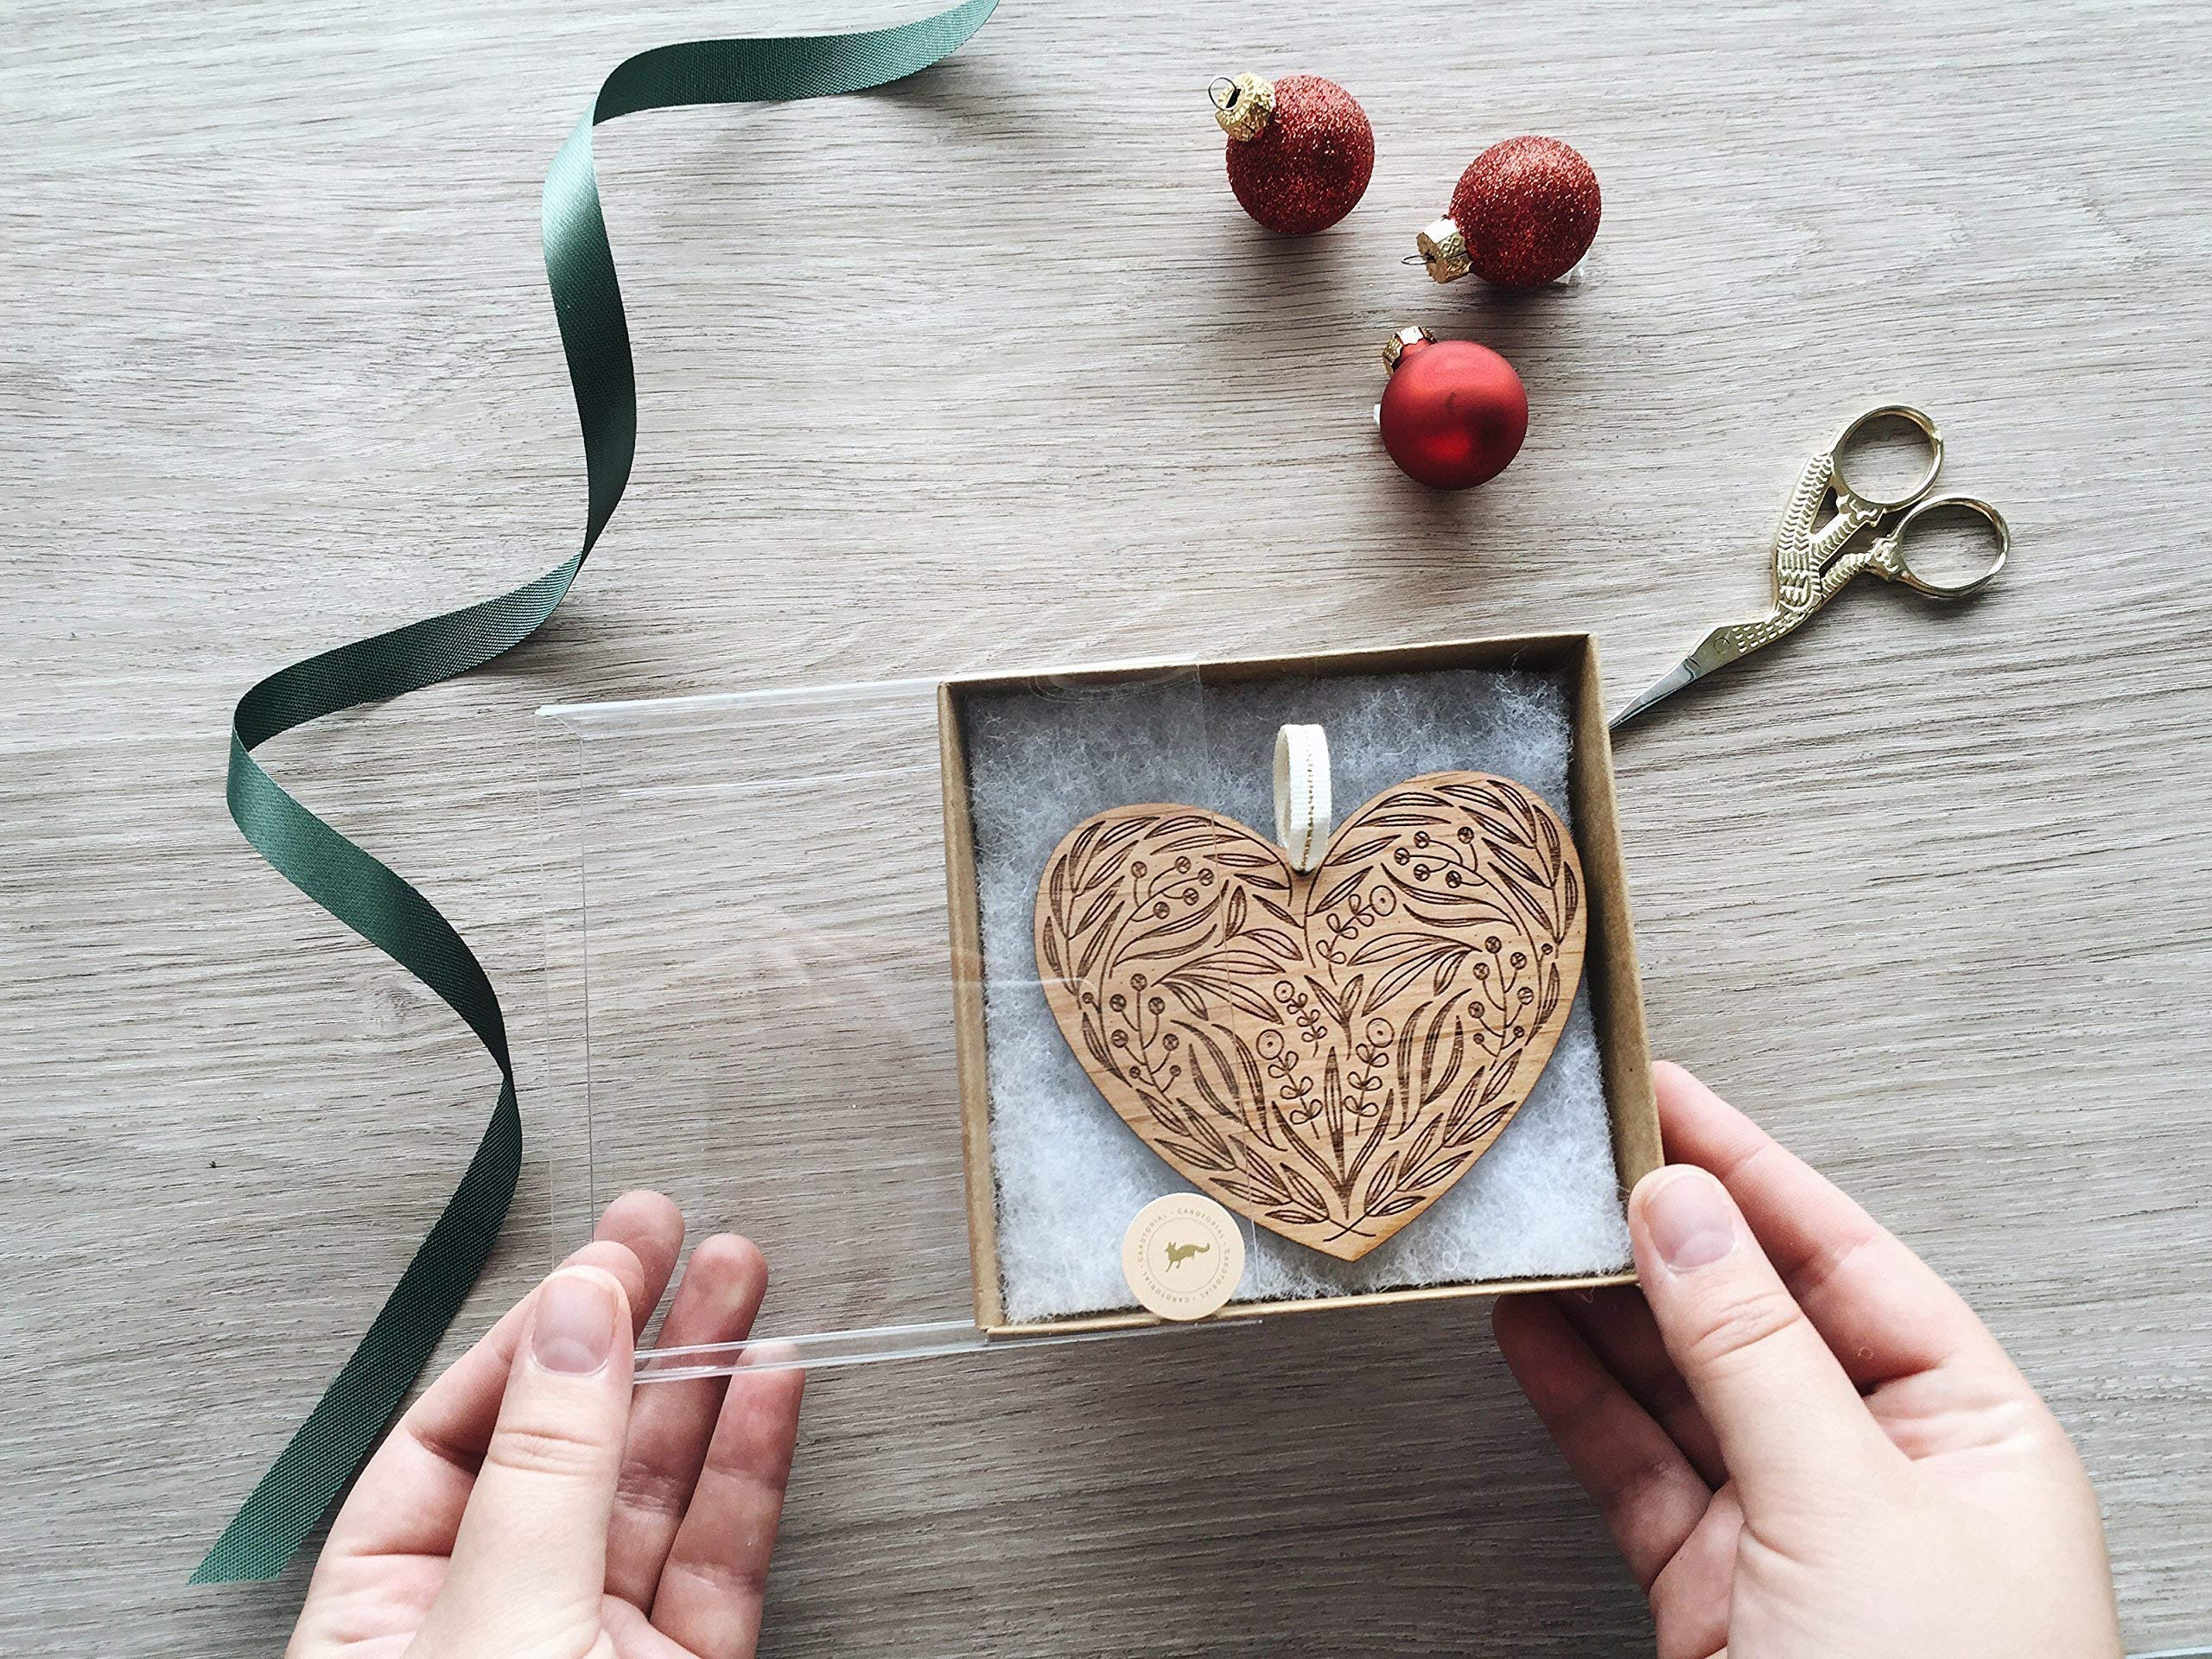 Floral Heart Laser Cut Wood Ornament (Christmas/Holiday / Anniversary/Newlyweds / Keepsake) by Cardtorial (Image #3)